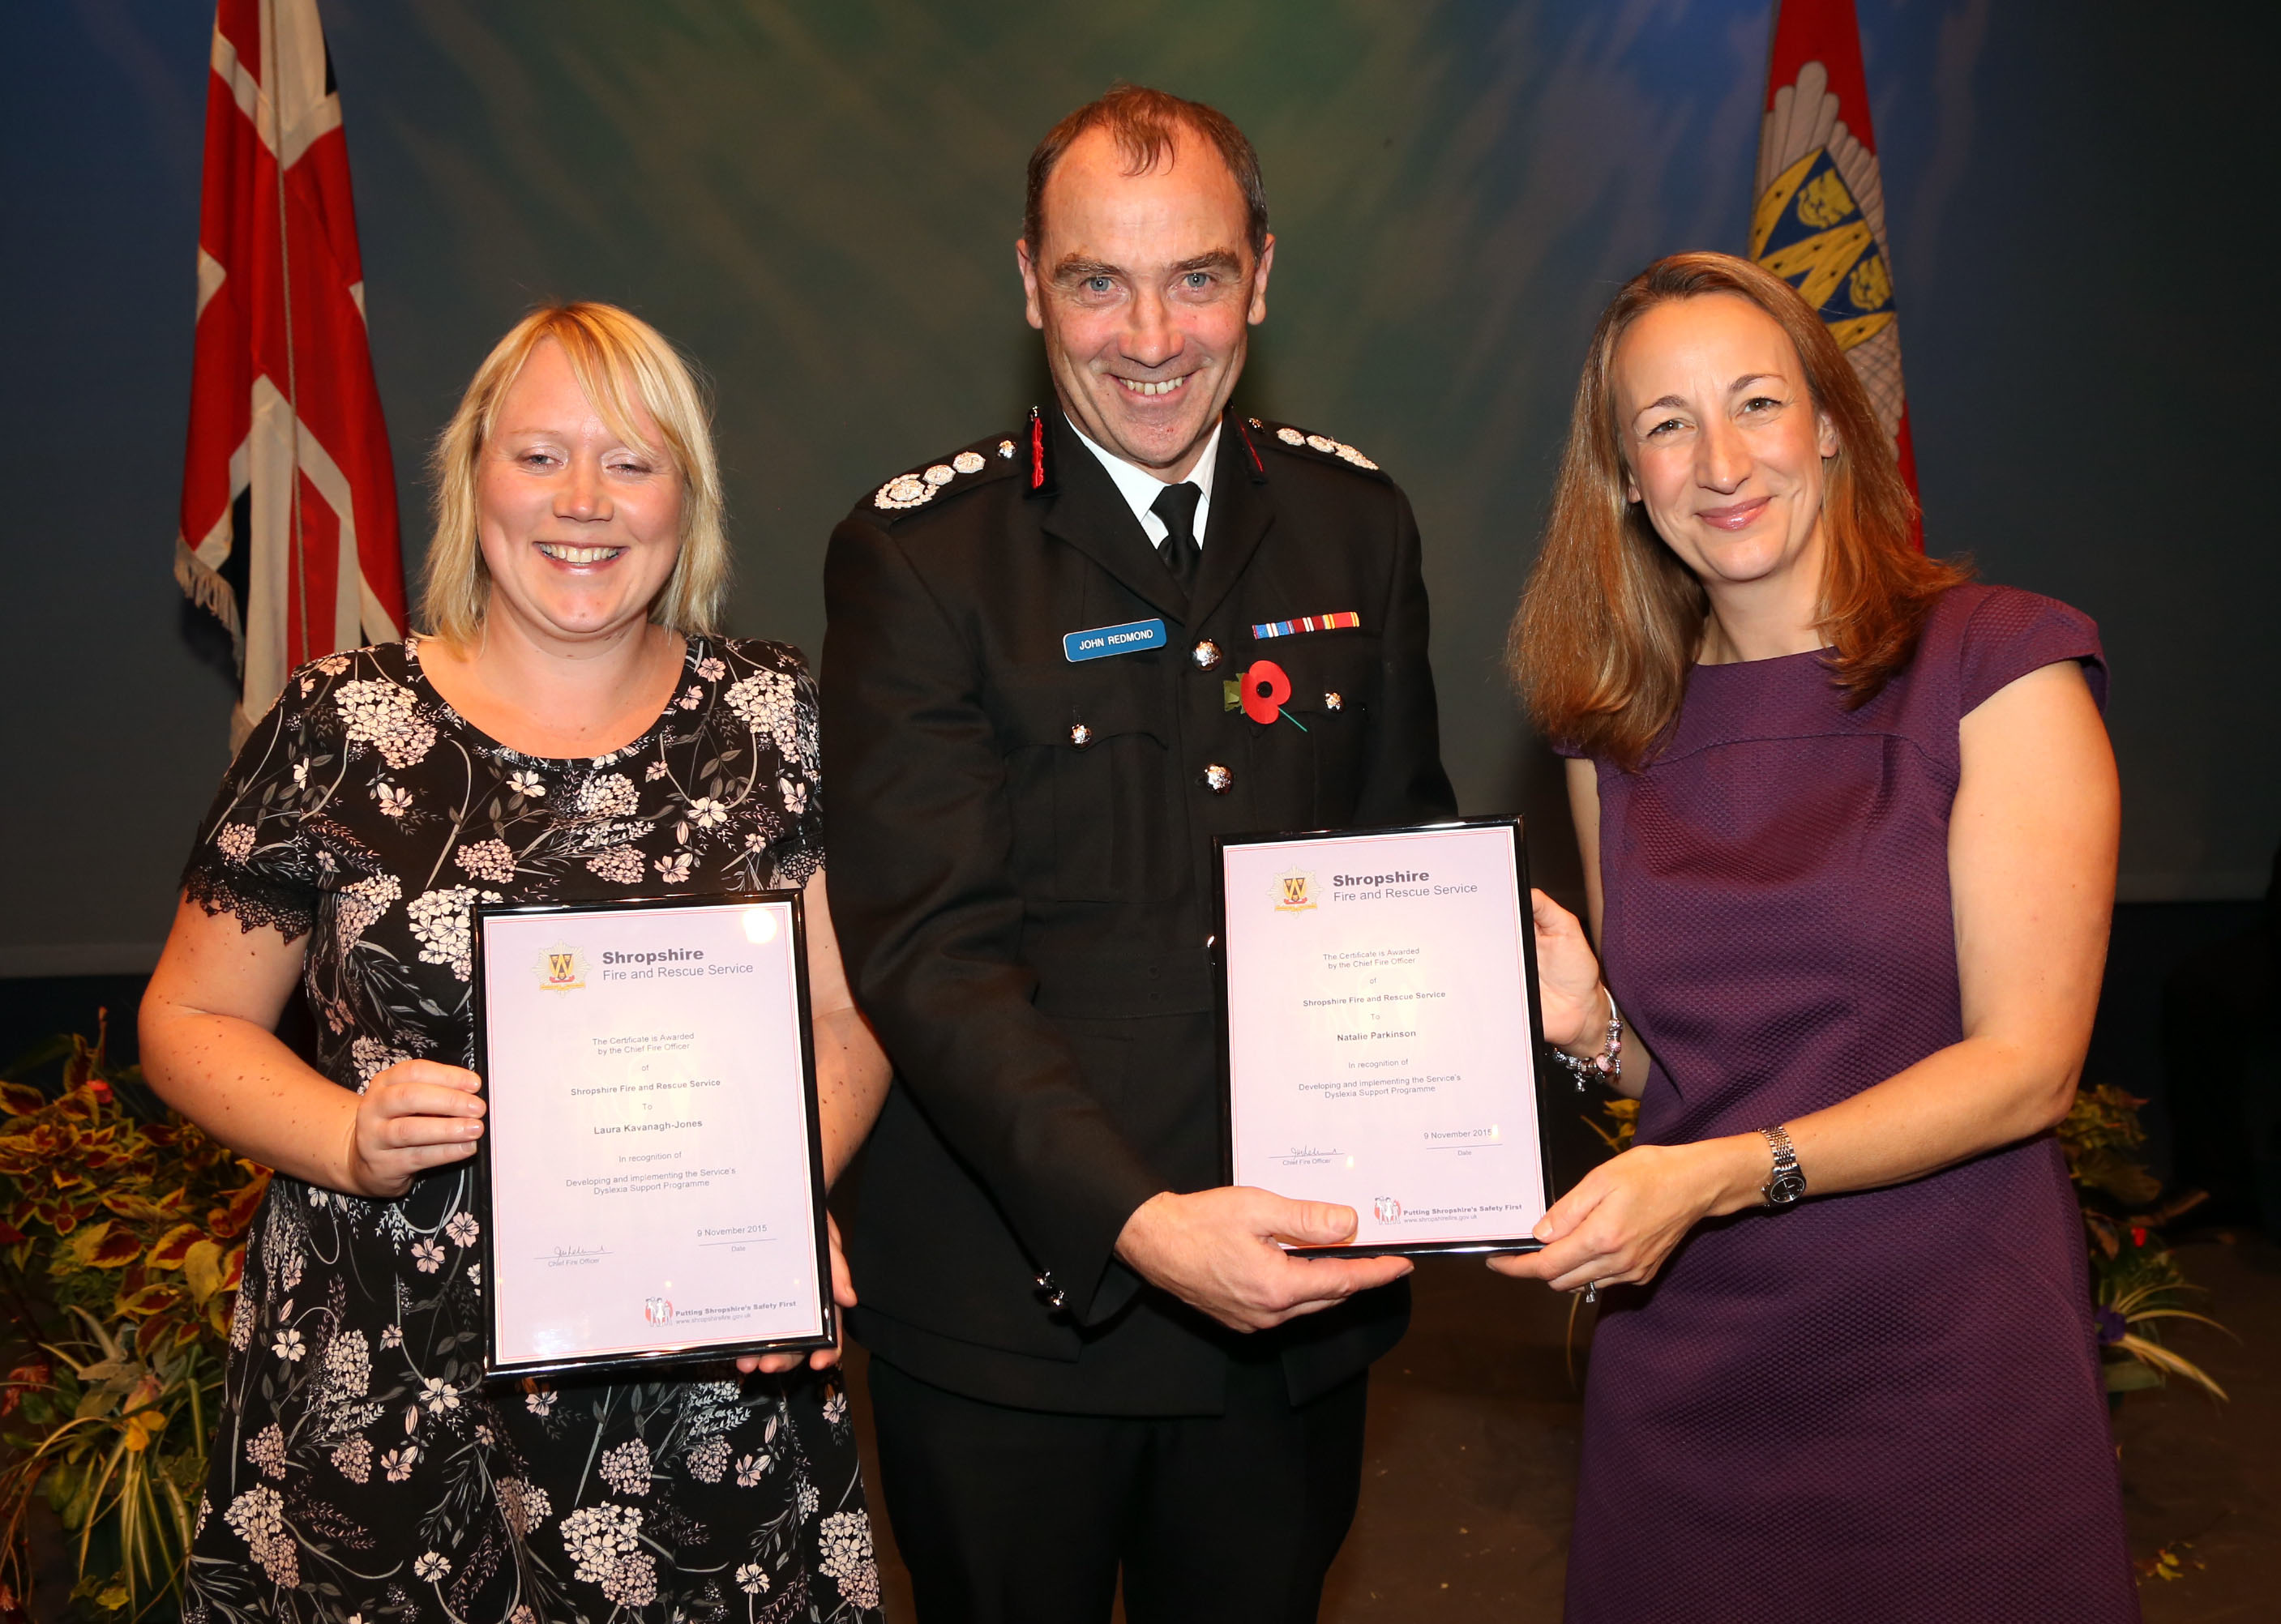 """Natalie Parkinson (right) and Laura Kavanagh-Jones were congratulated for their """"life changing"""" work on helping employees with dyslexia"""